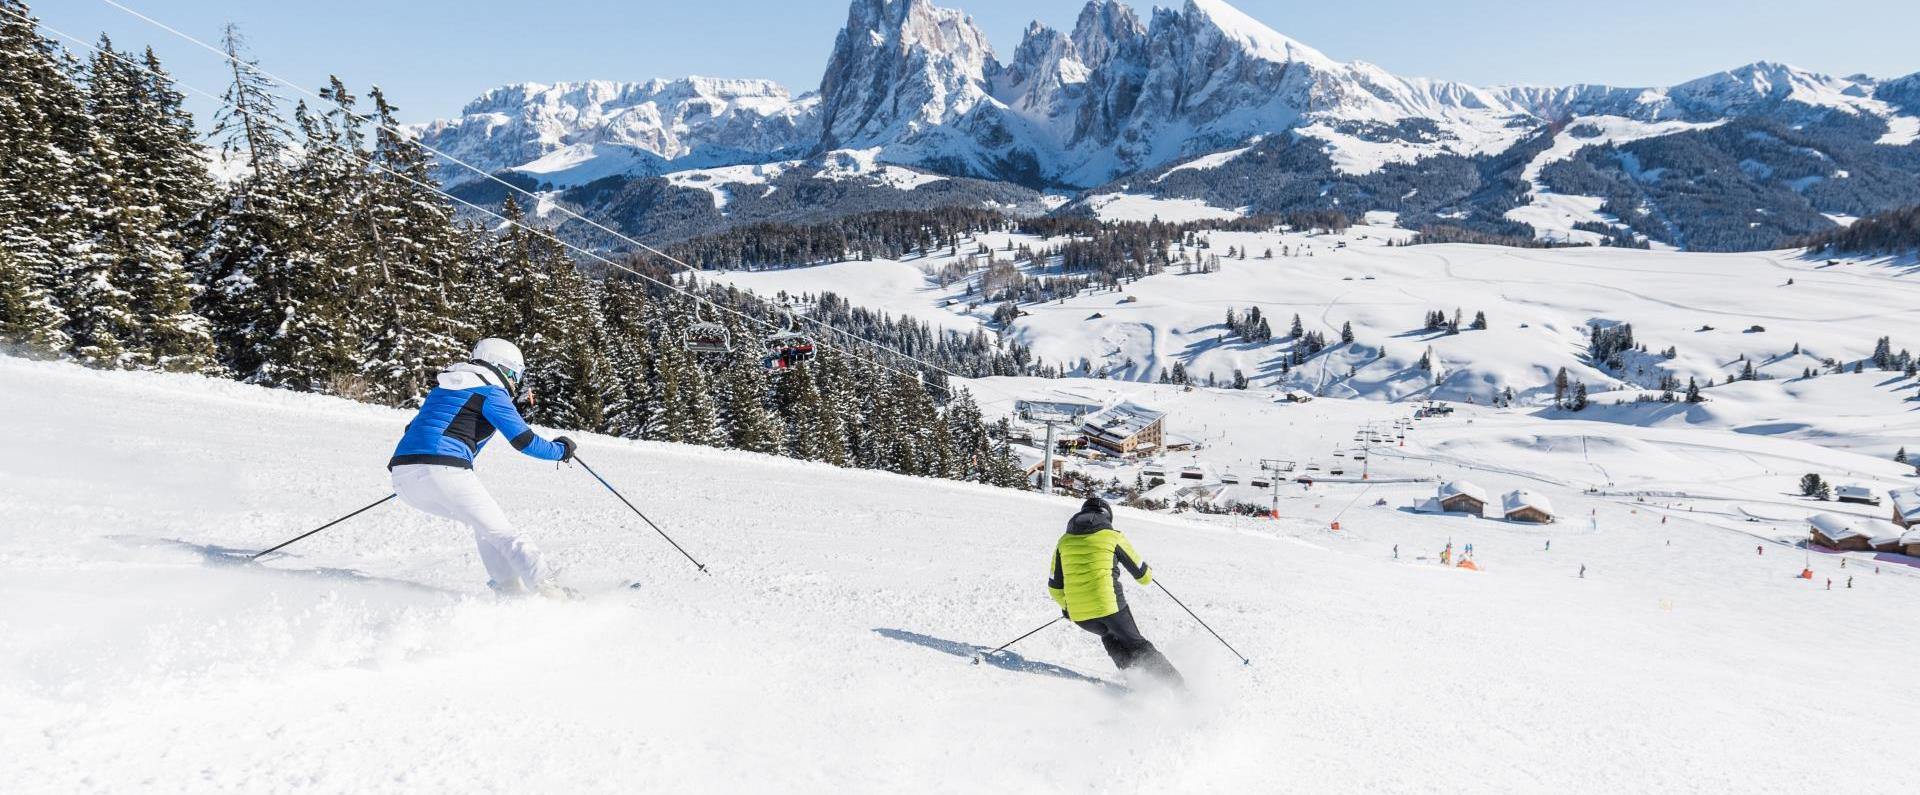 Winter vacation: skiing on the Seiser Alm in the Dolomites